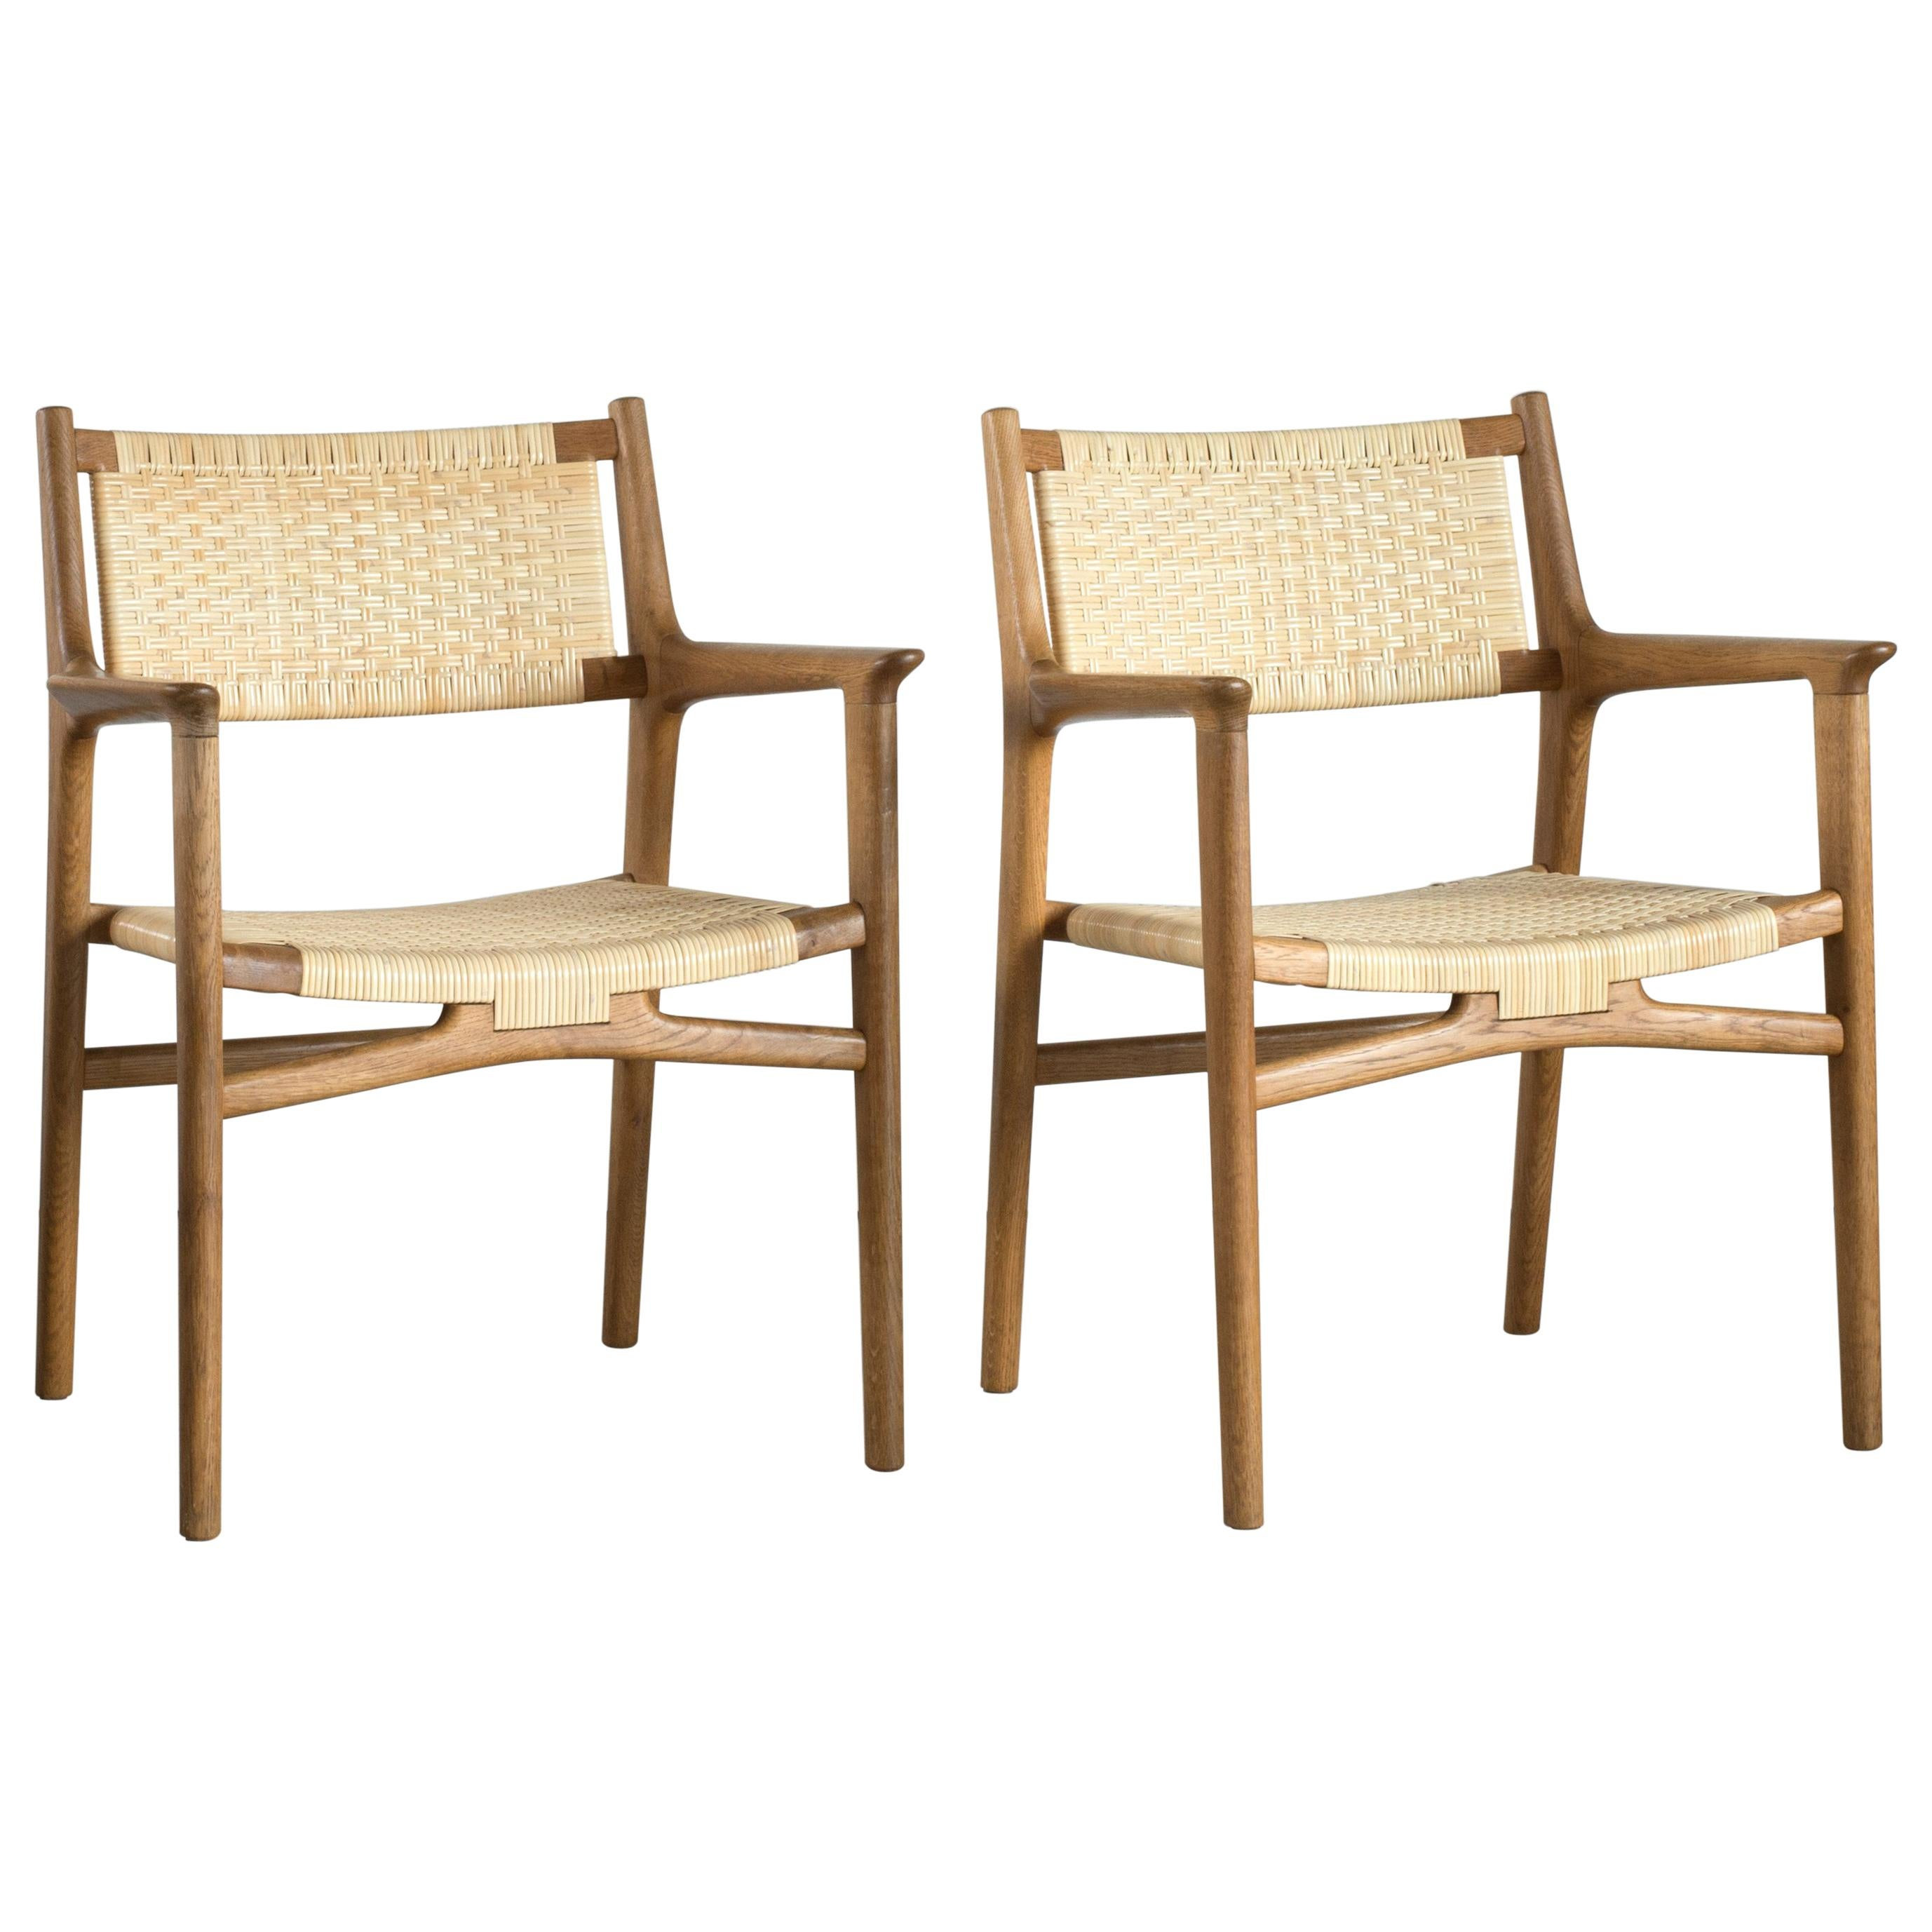 Pair of Hans J. Wegner JH515 Armchairs for Johannes Hansen